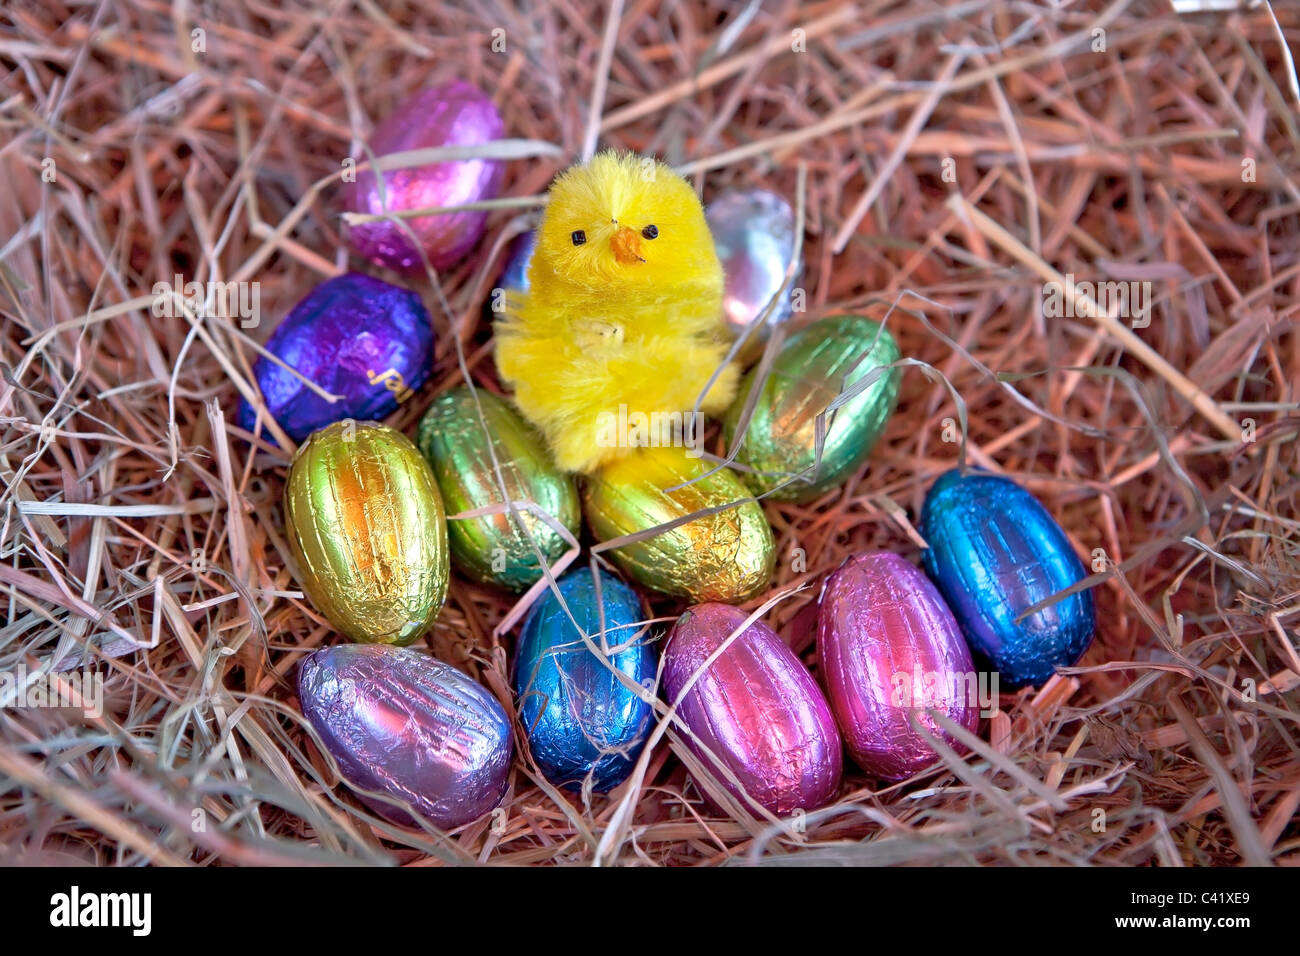 Easter egg with a chick in a nest of straw - Stock Image